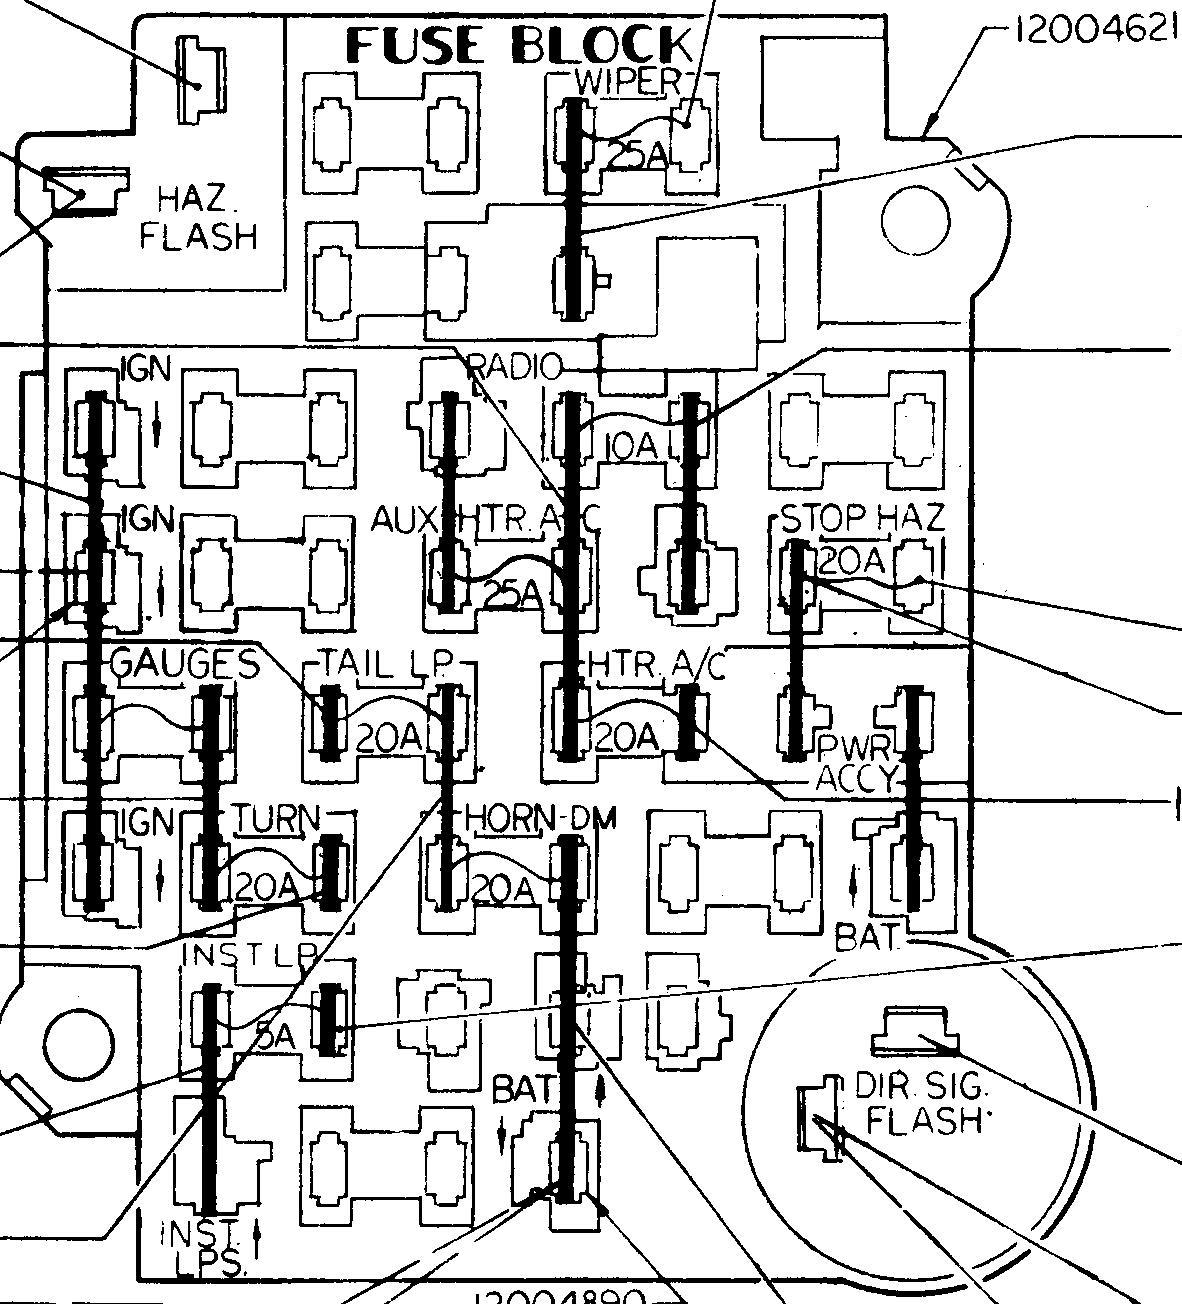 hight resolution of 1980 camaro fuse box wiring diagrams g35 fuse box 1972 camaro fuse box